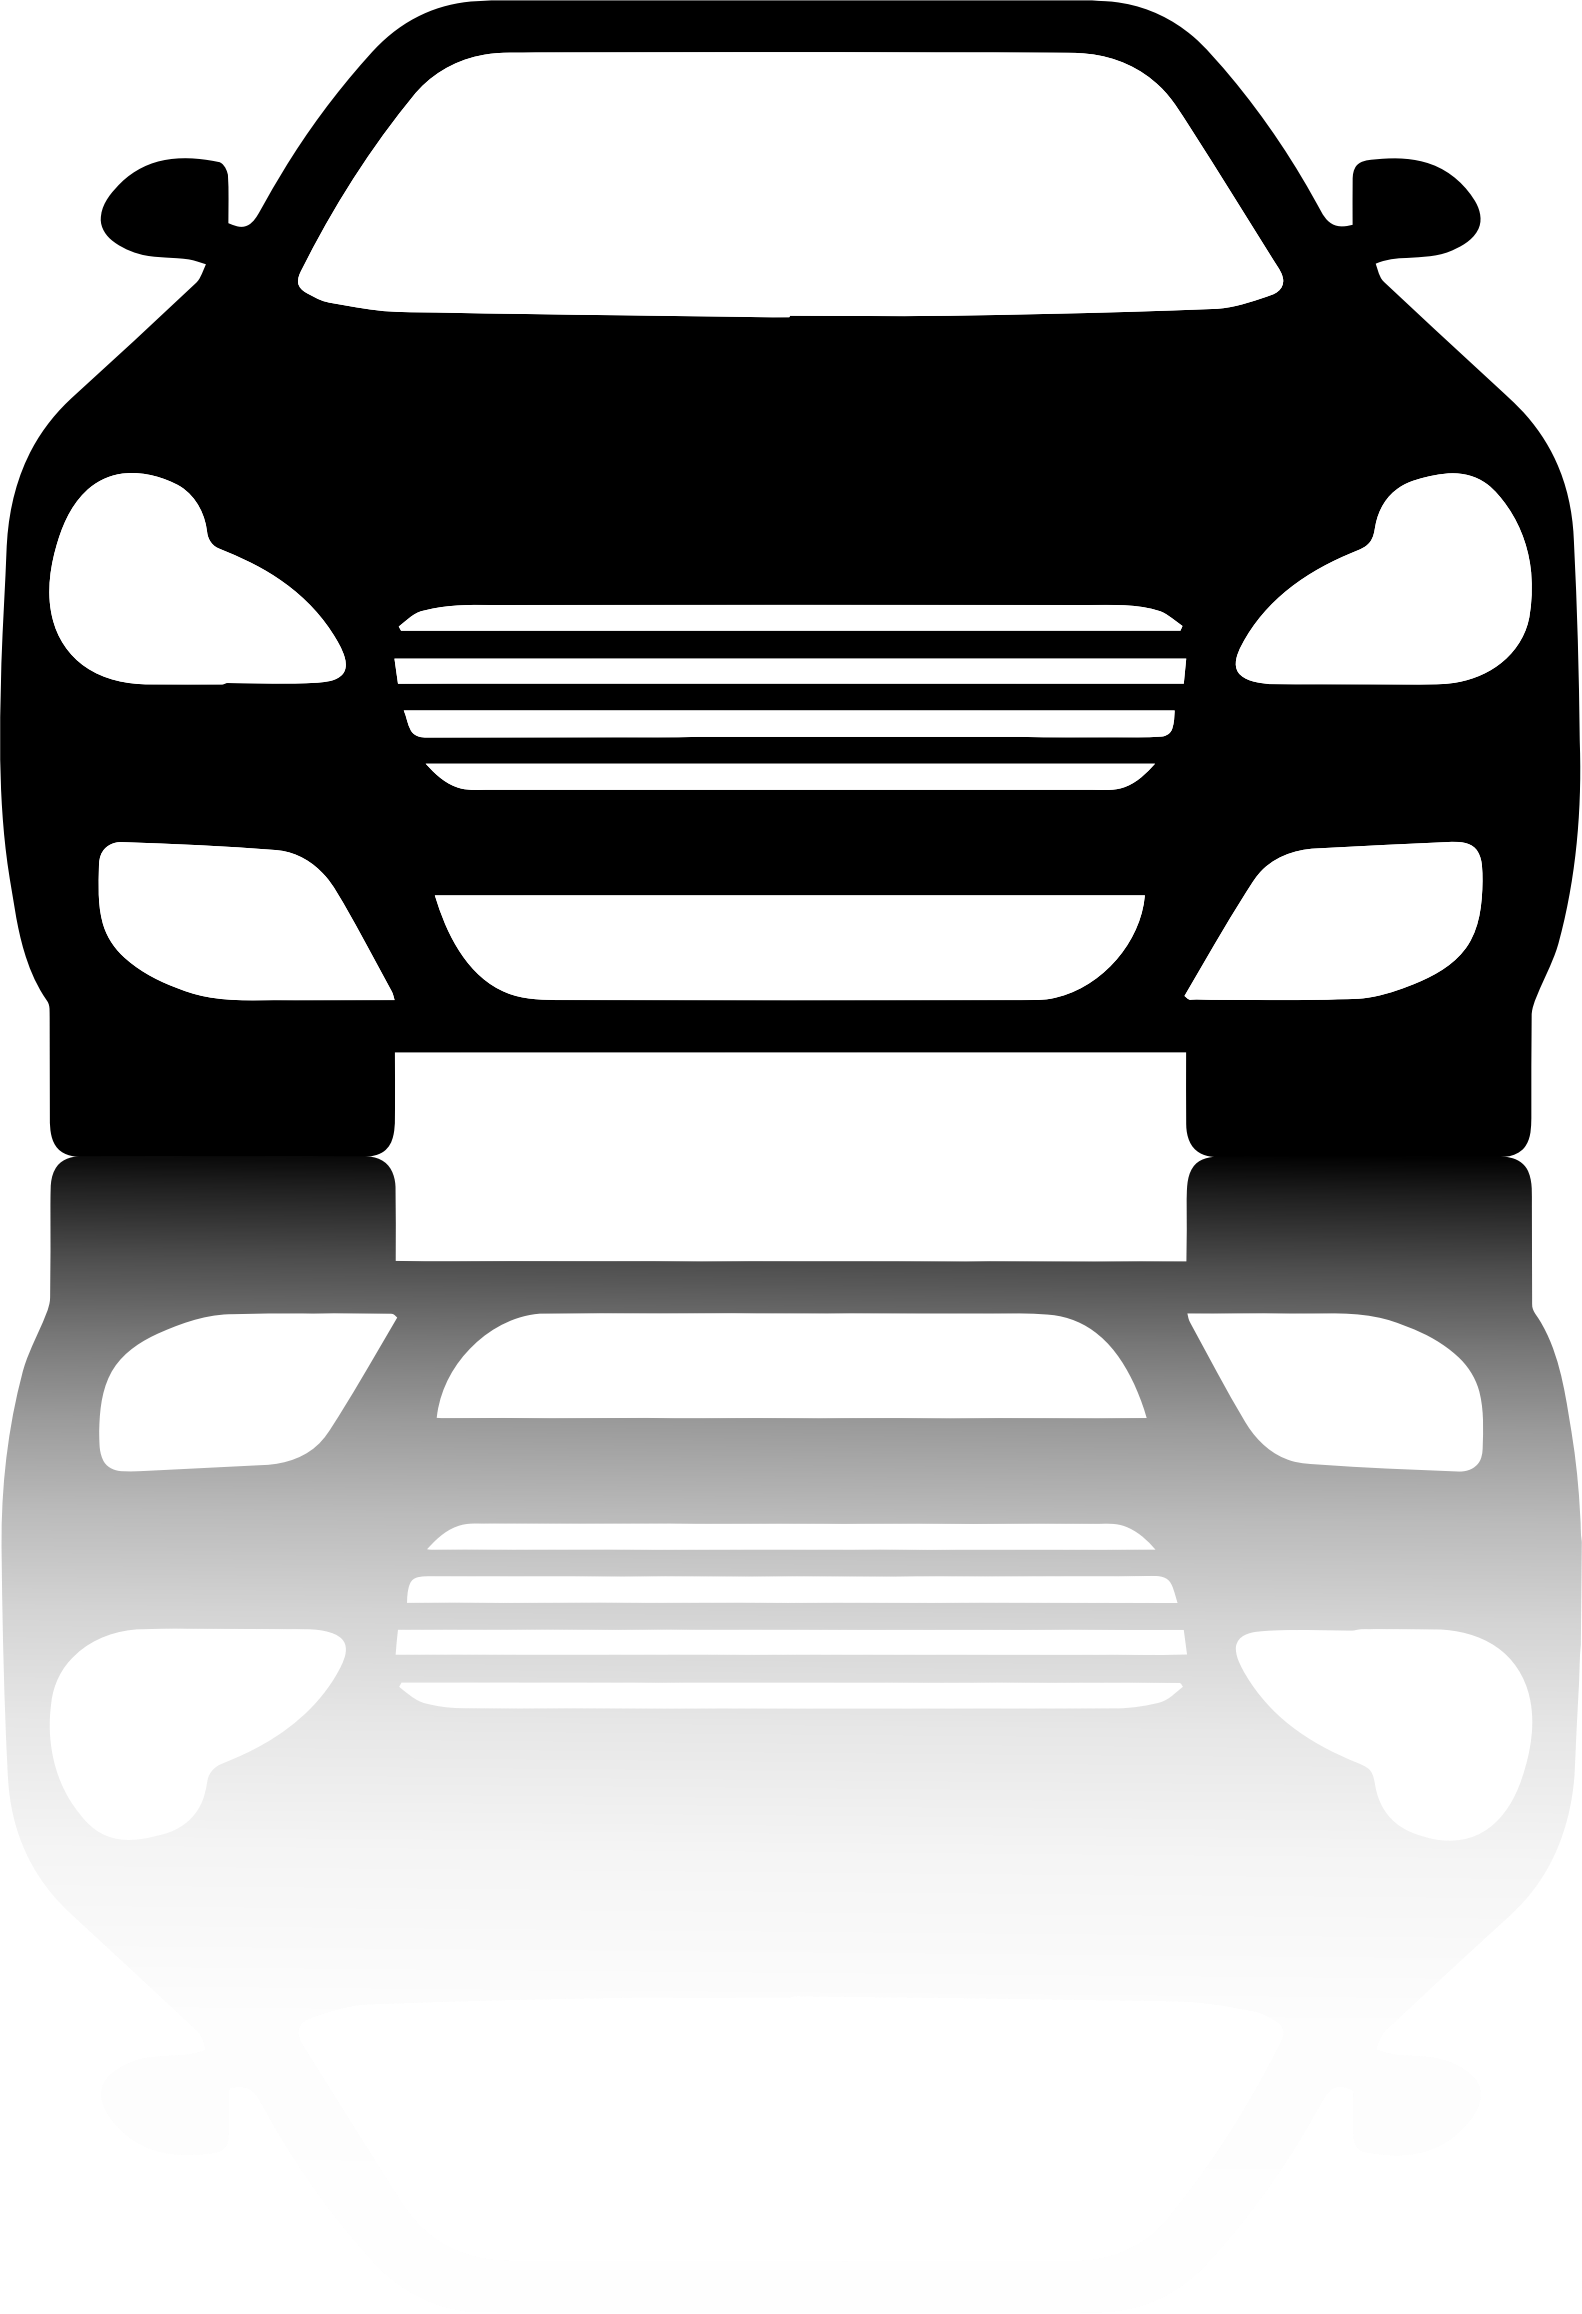 Car front clipart picture freeuse download 28+ Collection of Car Front Clipart | High quality, free cliparts ... picture freeuse download